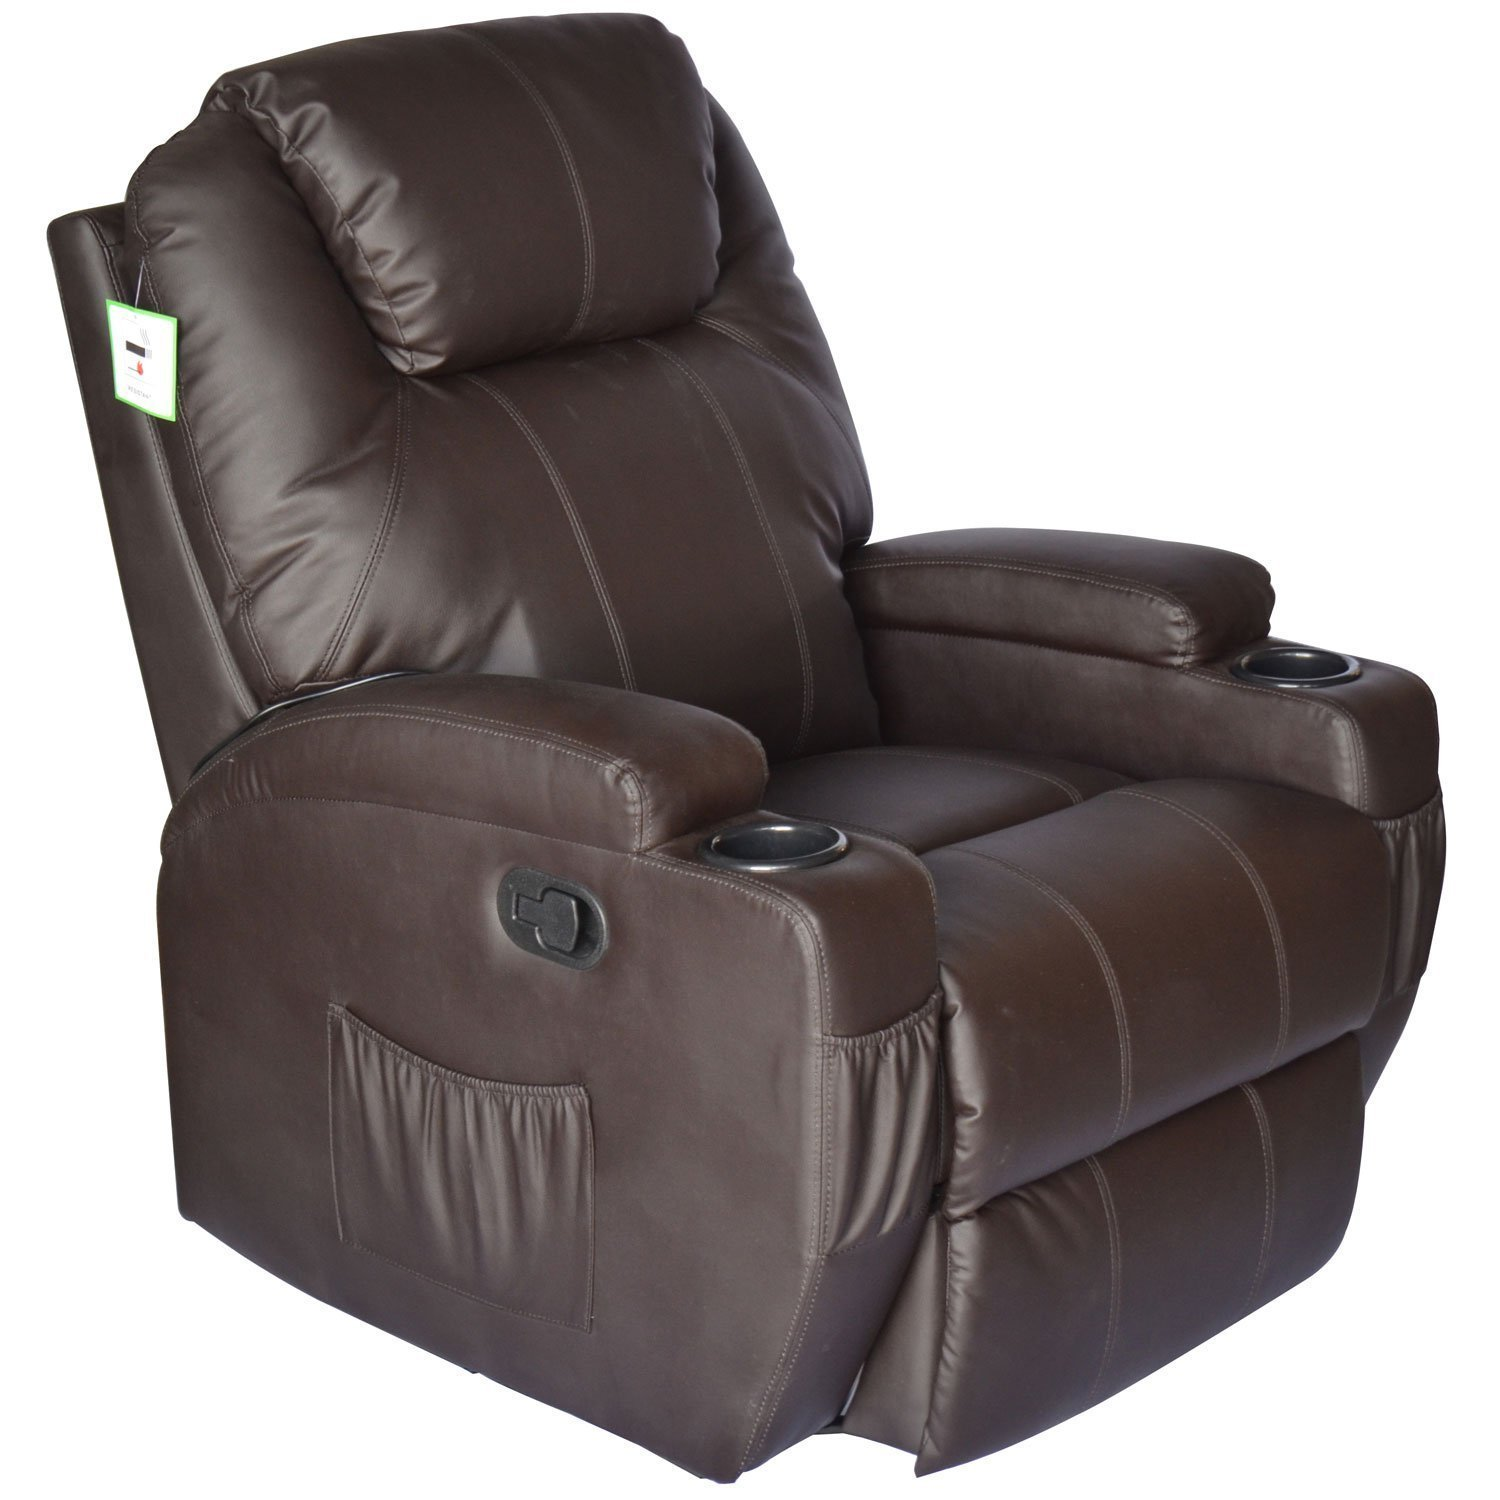 Recliner Massager | Massage Reclining Chair | Stratolounger  sc 1 st  Marc Charles Steakhouse & Furniture u0026 Rug: Reclining Leather Massage Chair | Recliner Parts ... islam-shia.org